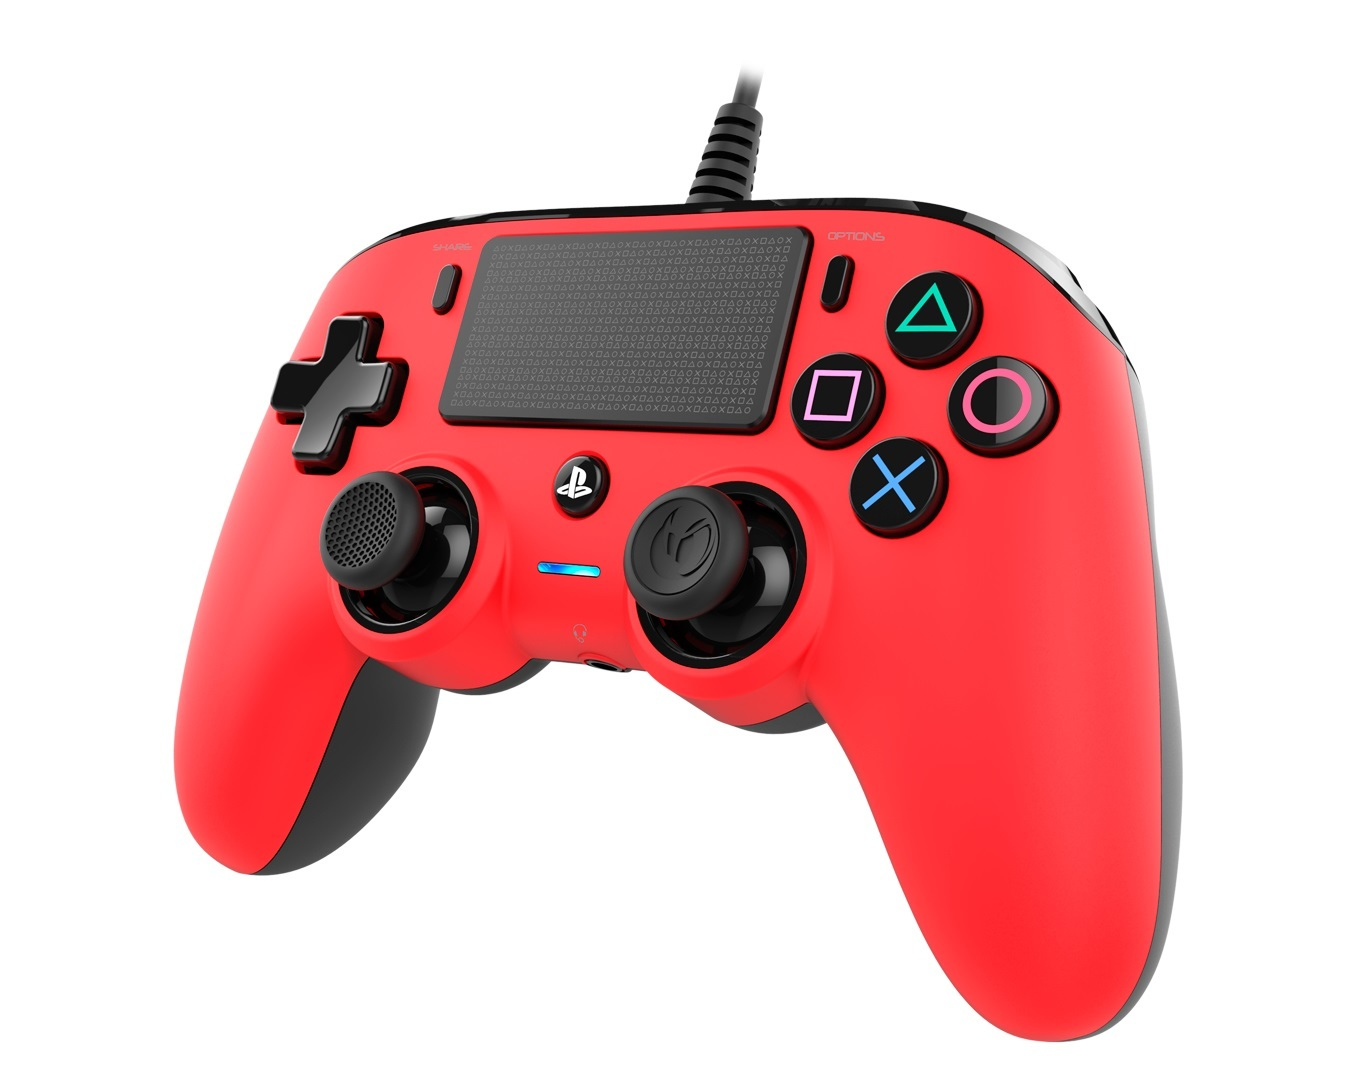 Nacon PS4 Wired Gaming Controller - Red for PS4 image